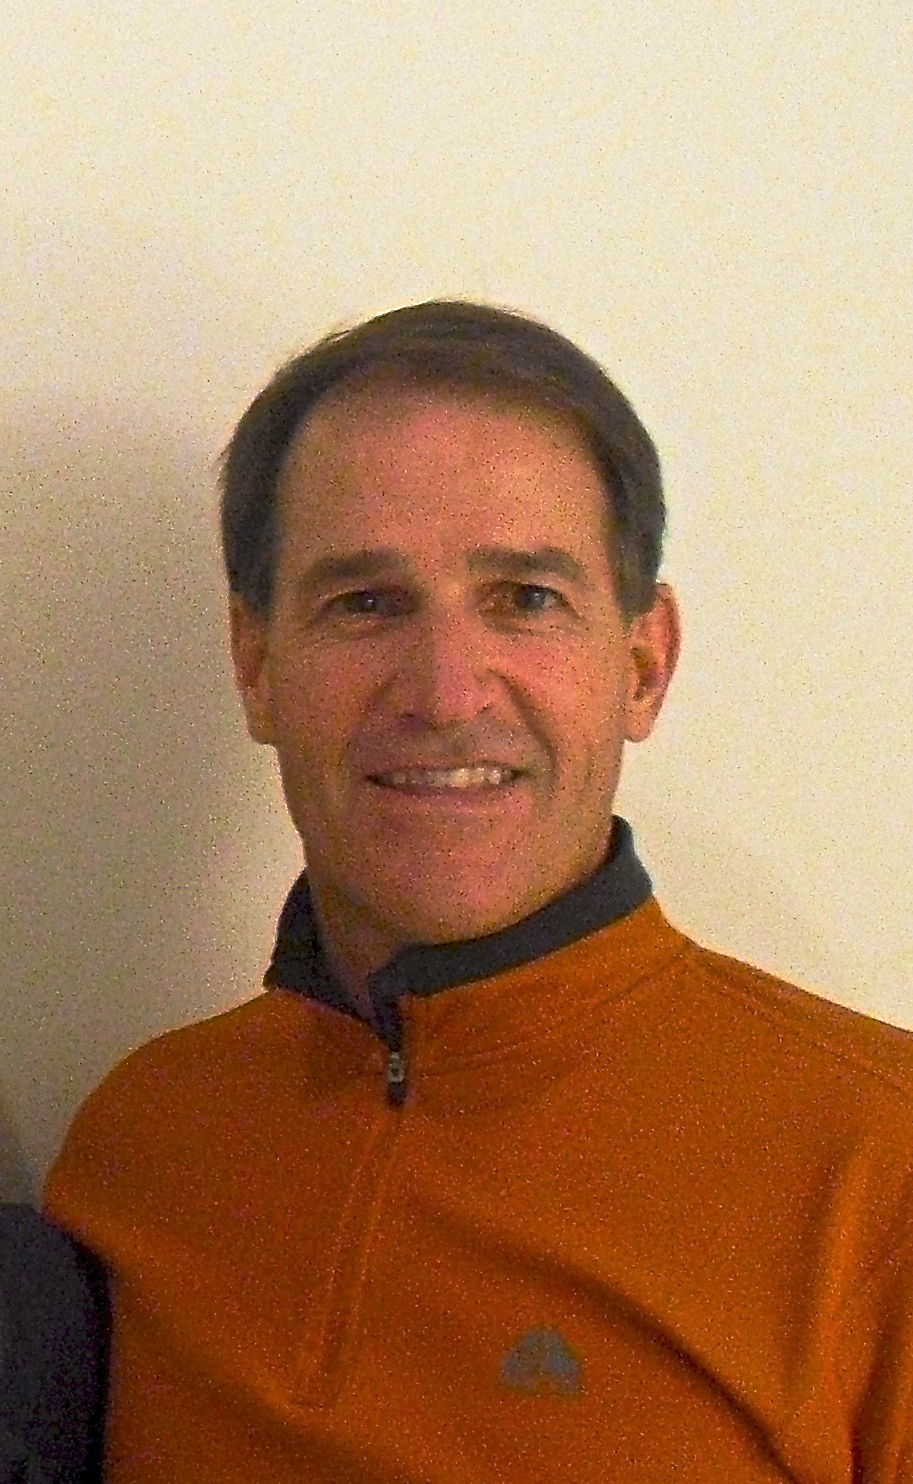 Matt Tredway, President and Member of Executive Committee of the Board